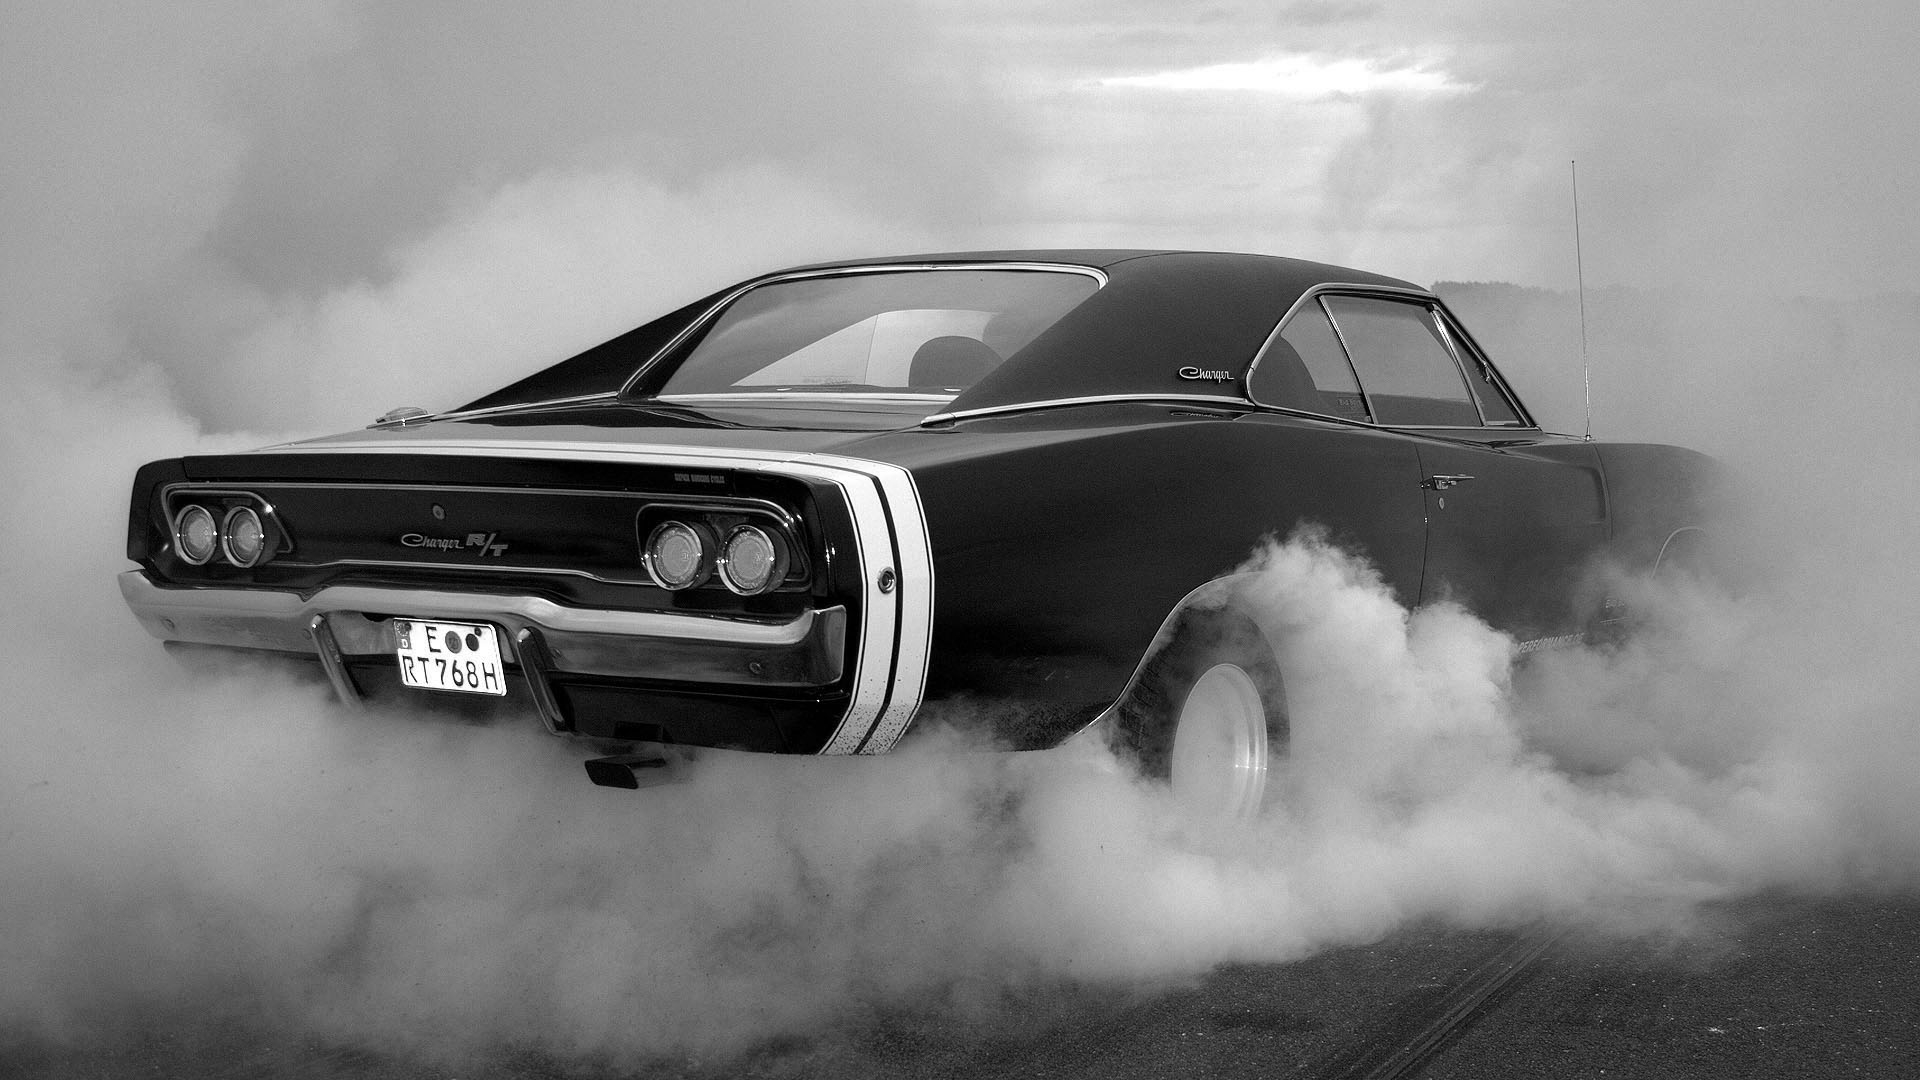 One of the fastest cars under 30K can burnout.